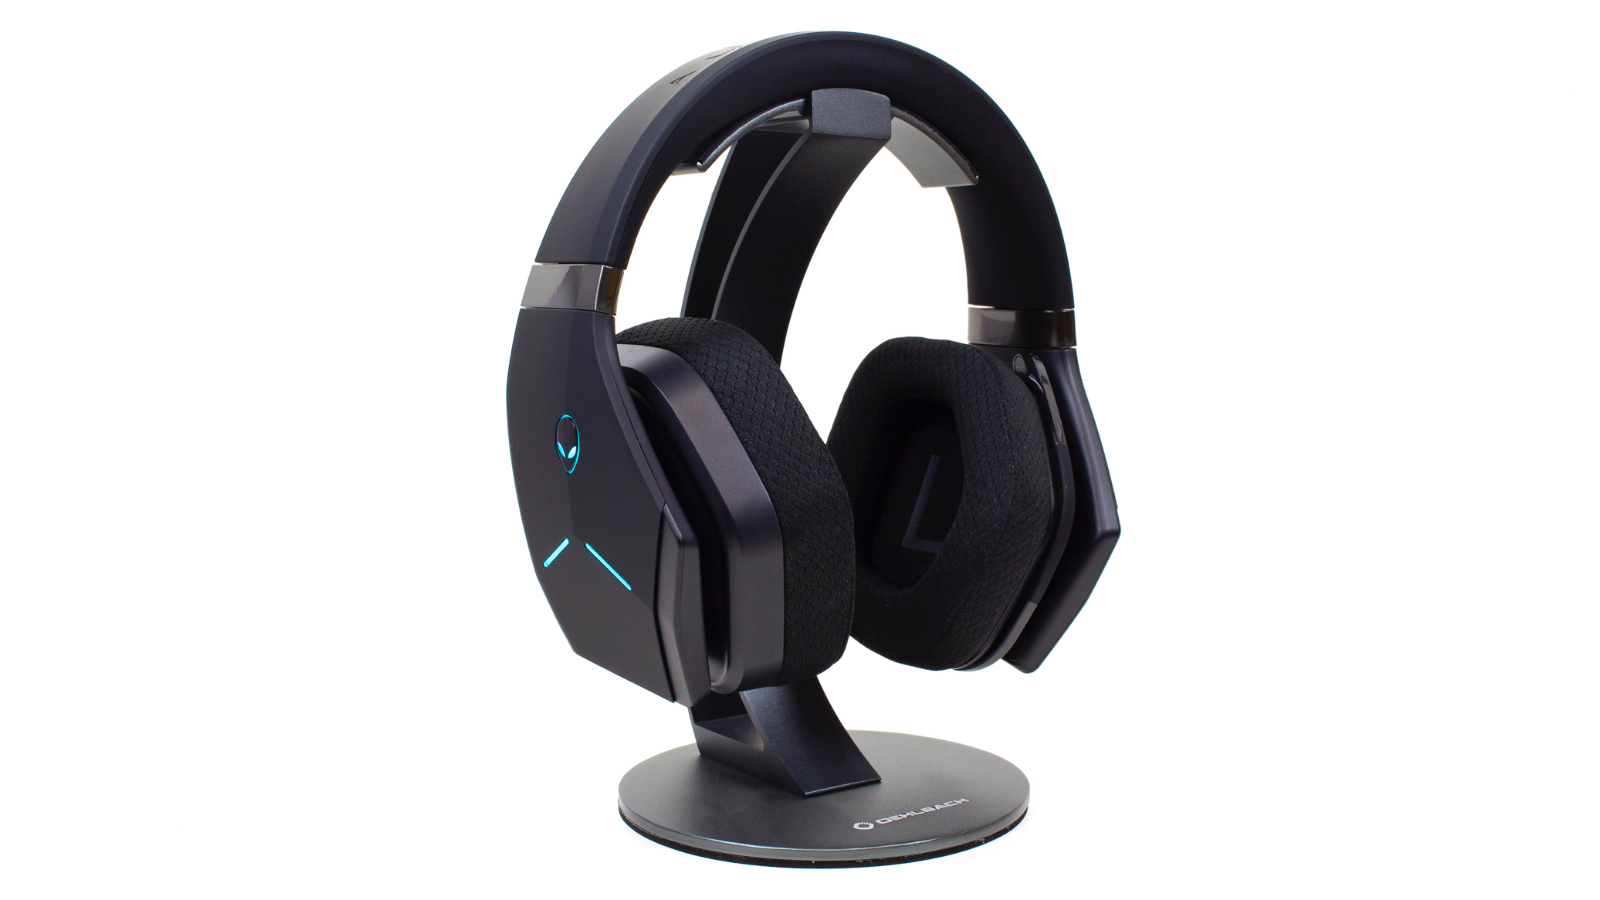 Alienware AW988 Wireless Gaming Headset Review - Software